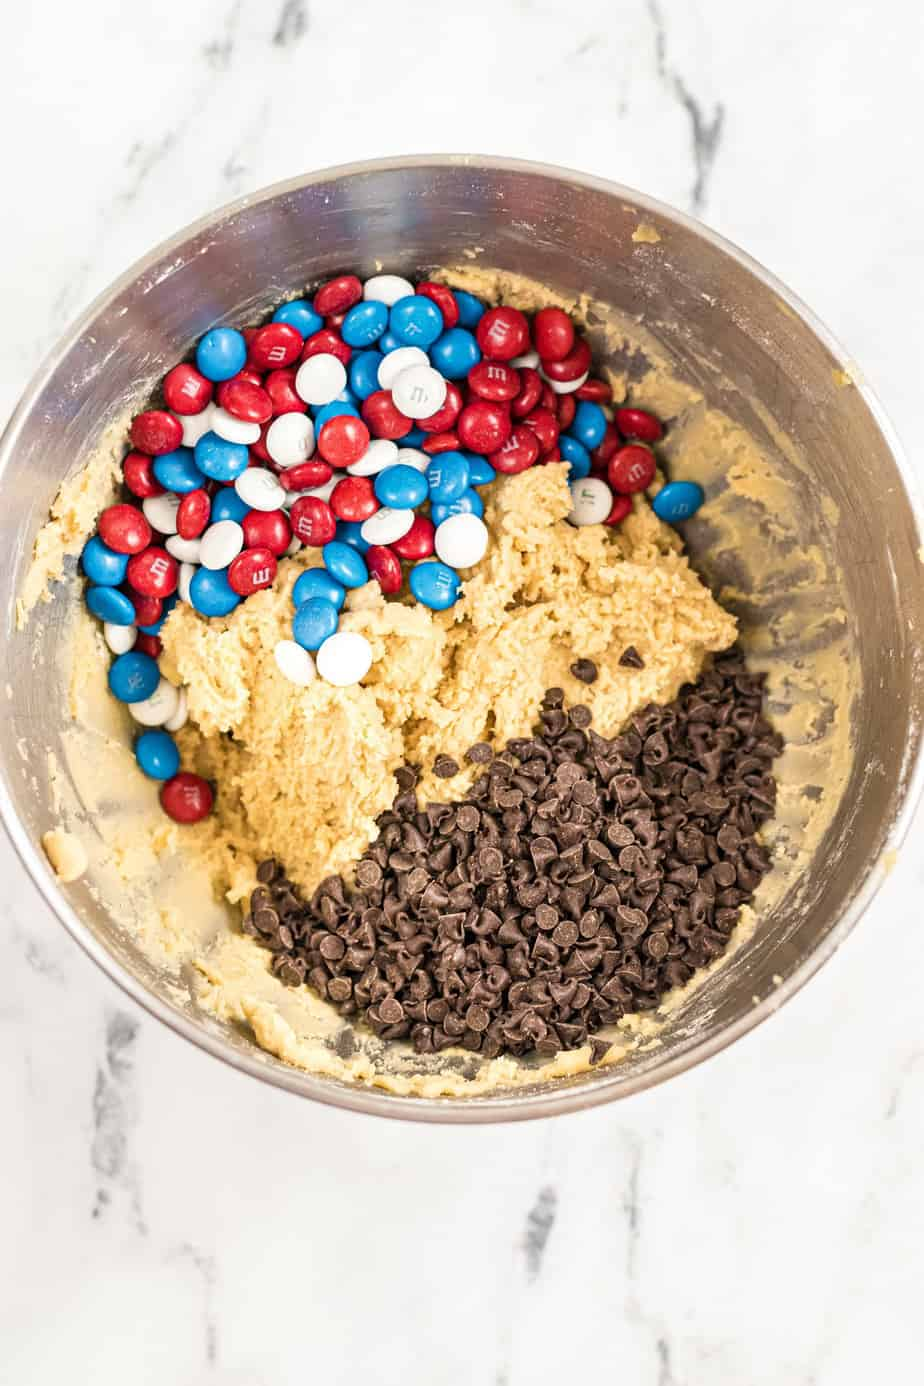 Cookie dough with red white and blue M&Ms and chocolate chips in a bowl.